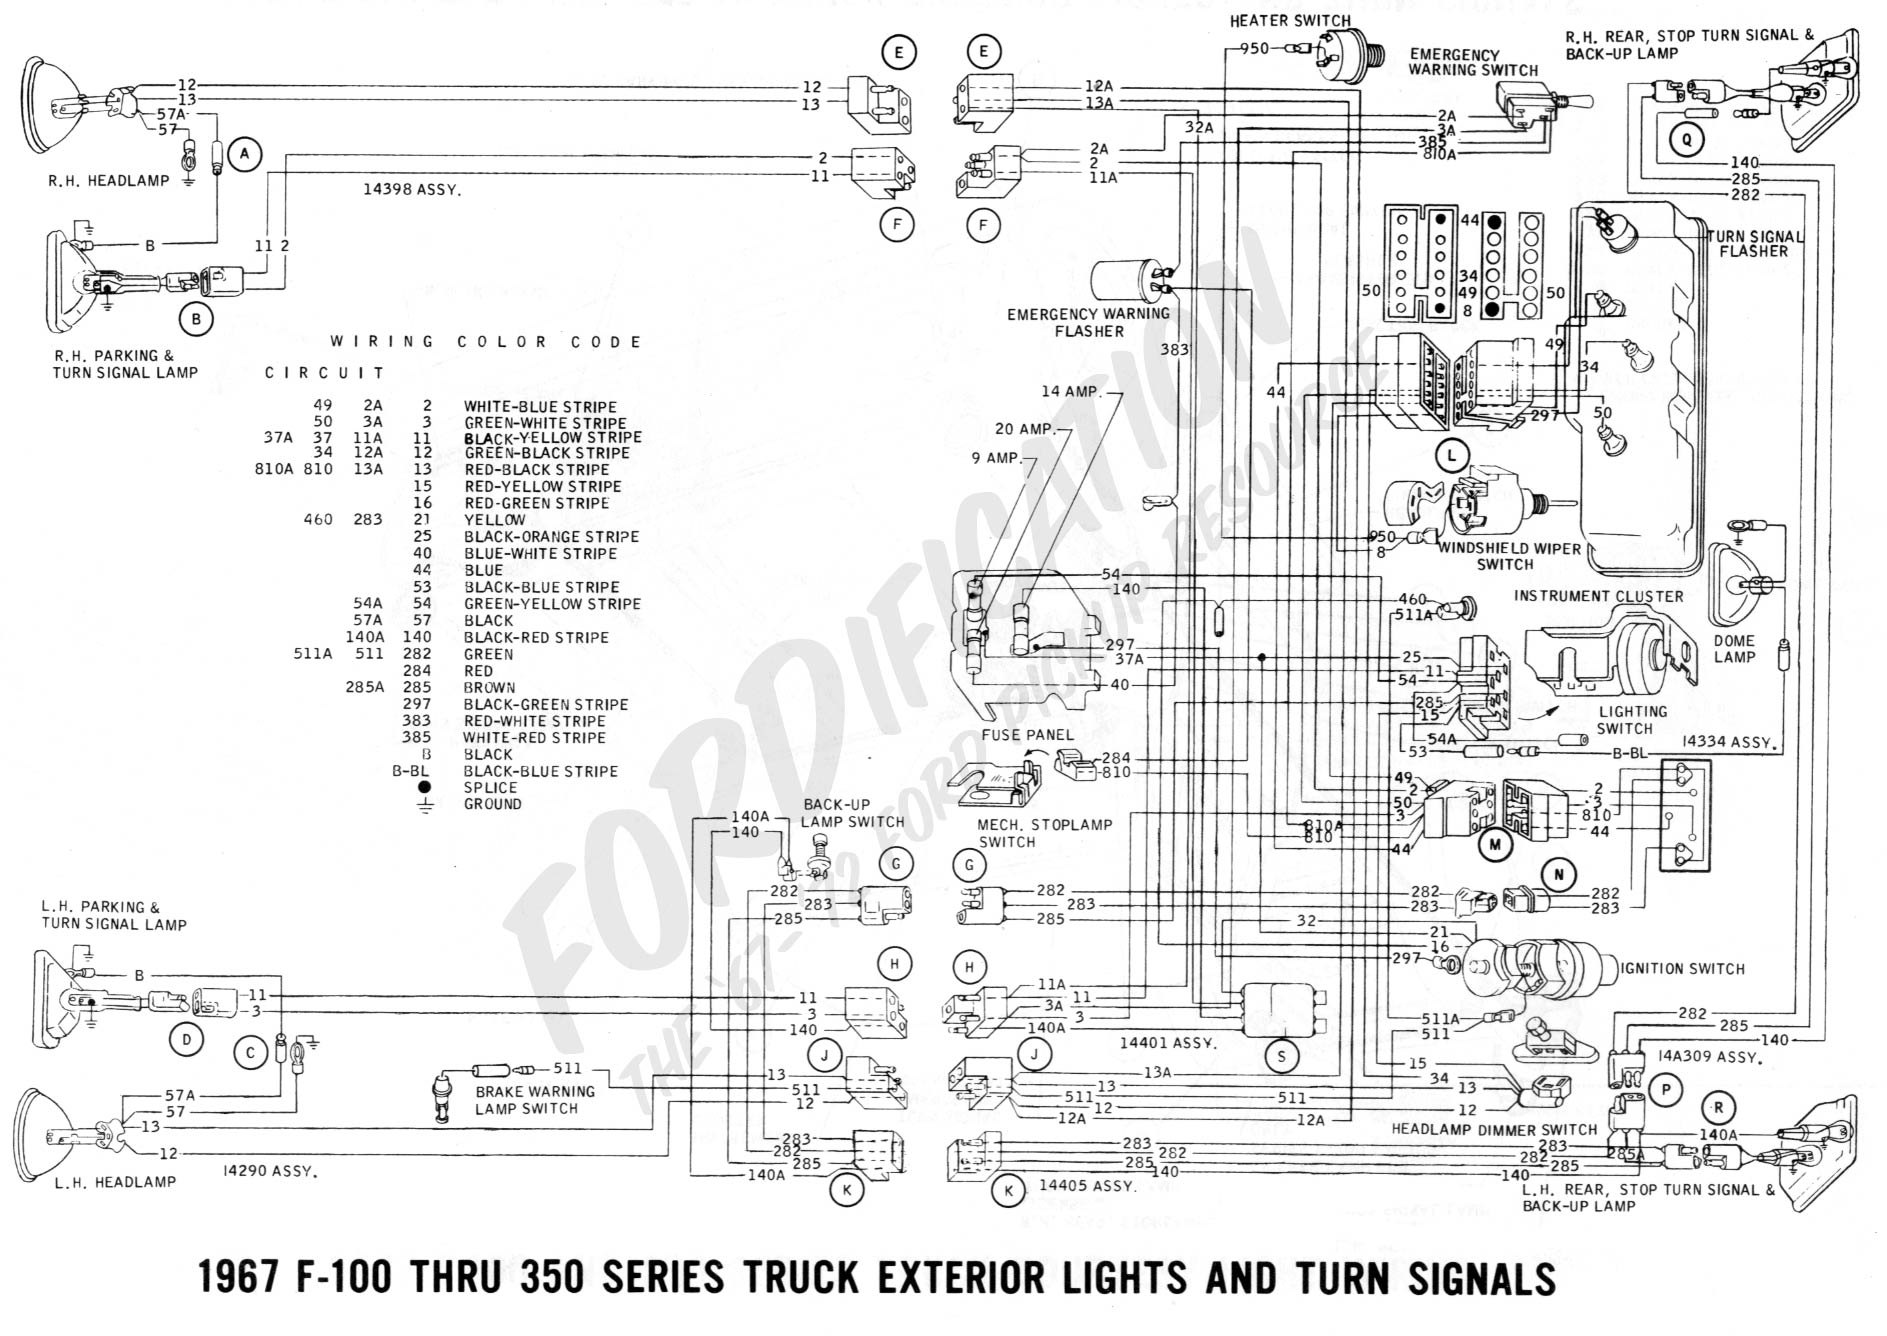 2006 f550 dually fuse diagram